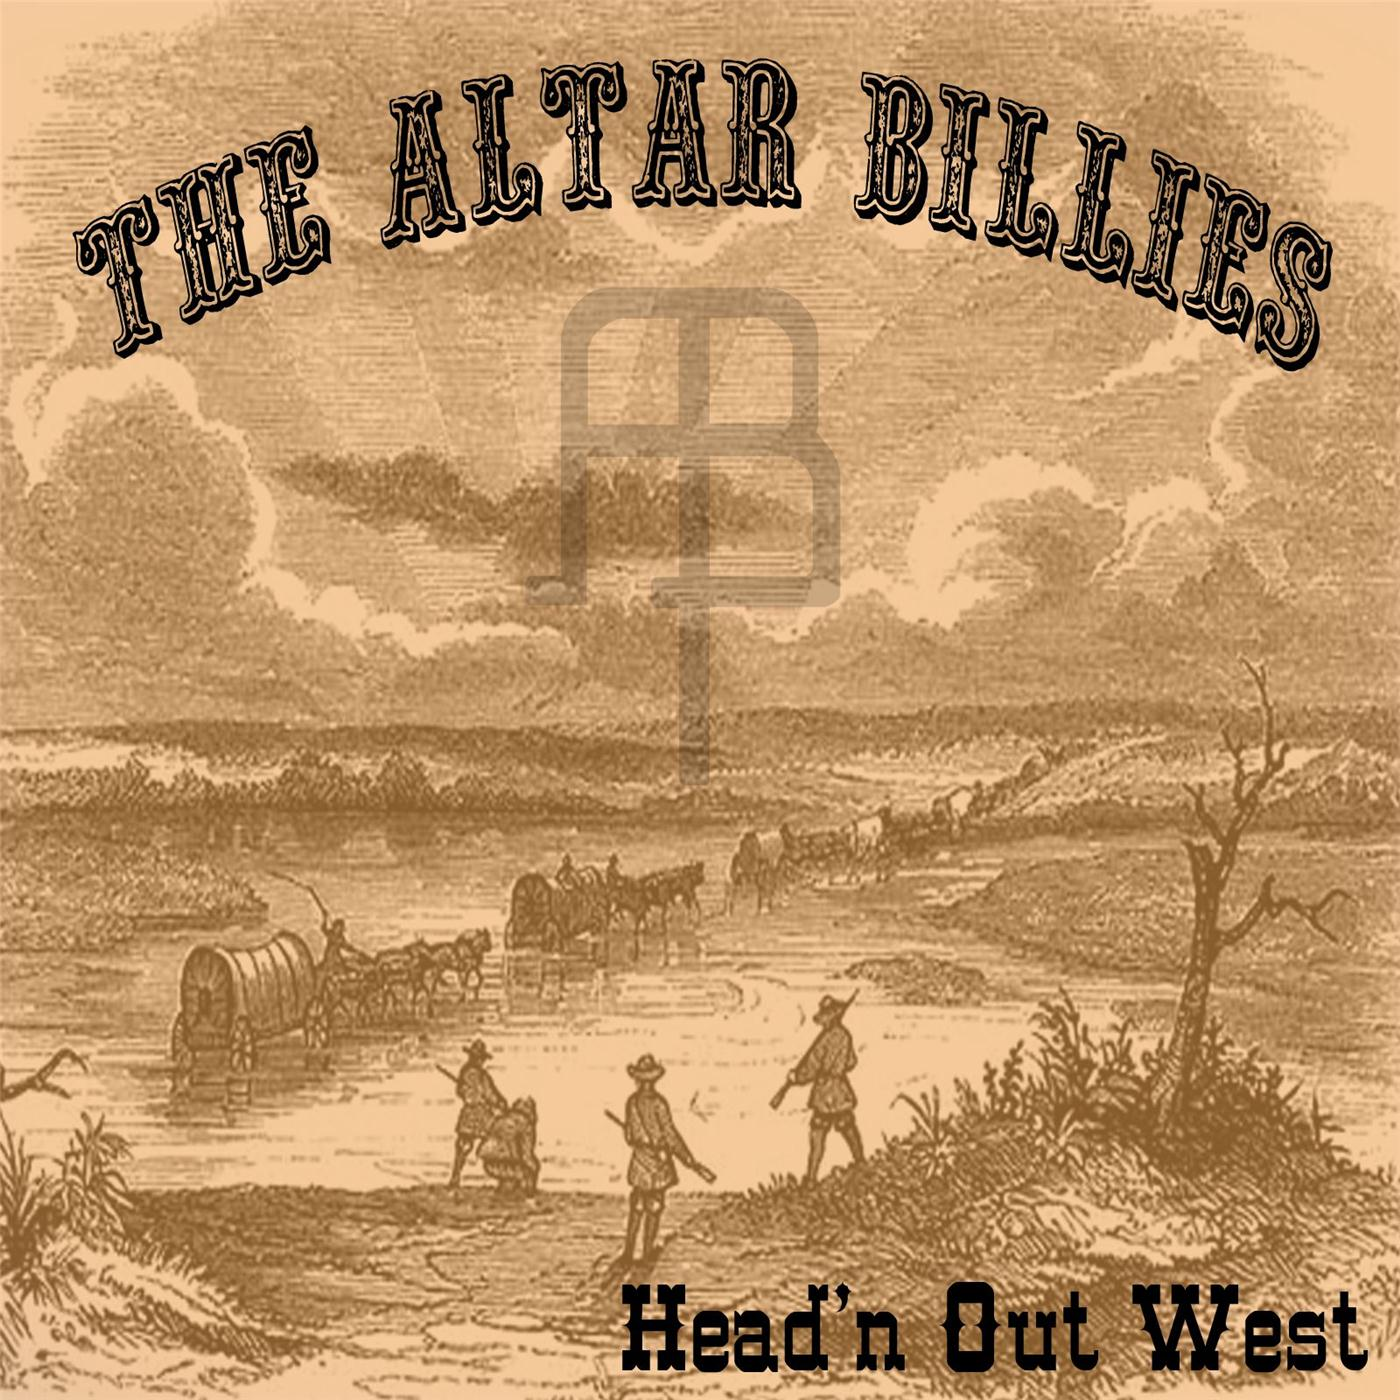 Head'n Out West (The Altar Billies, 2014)